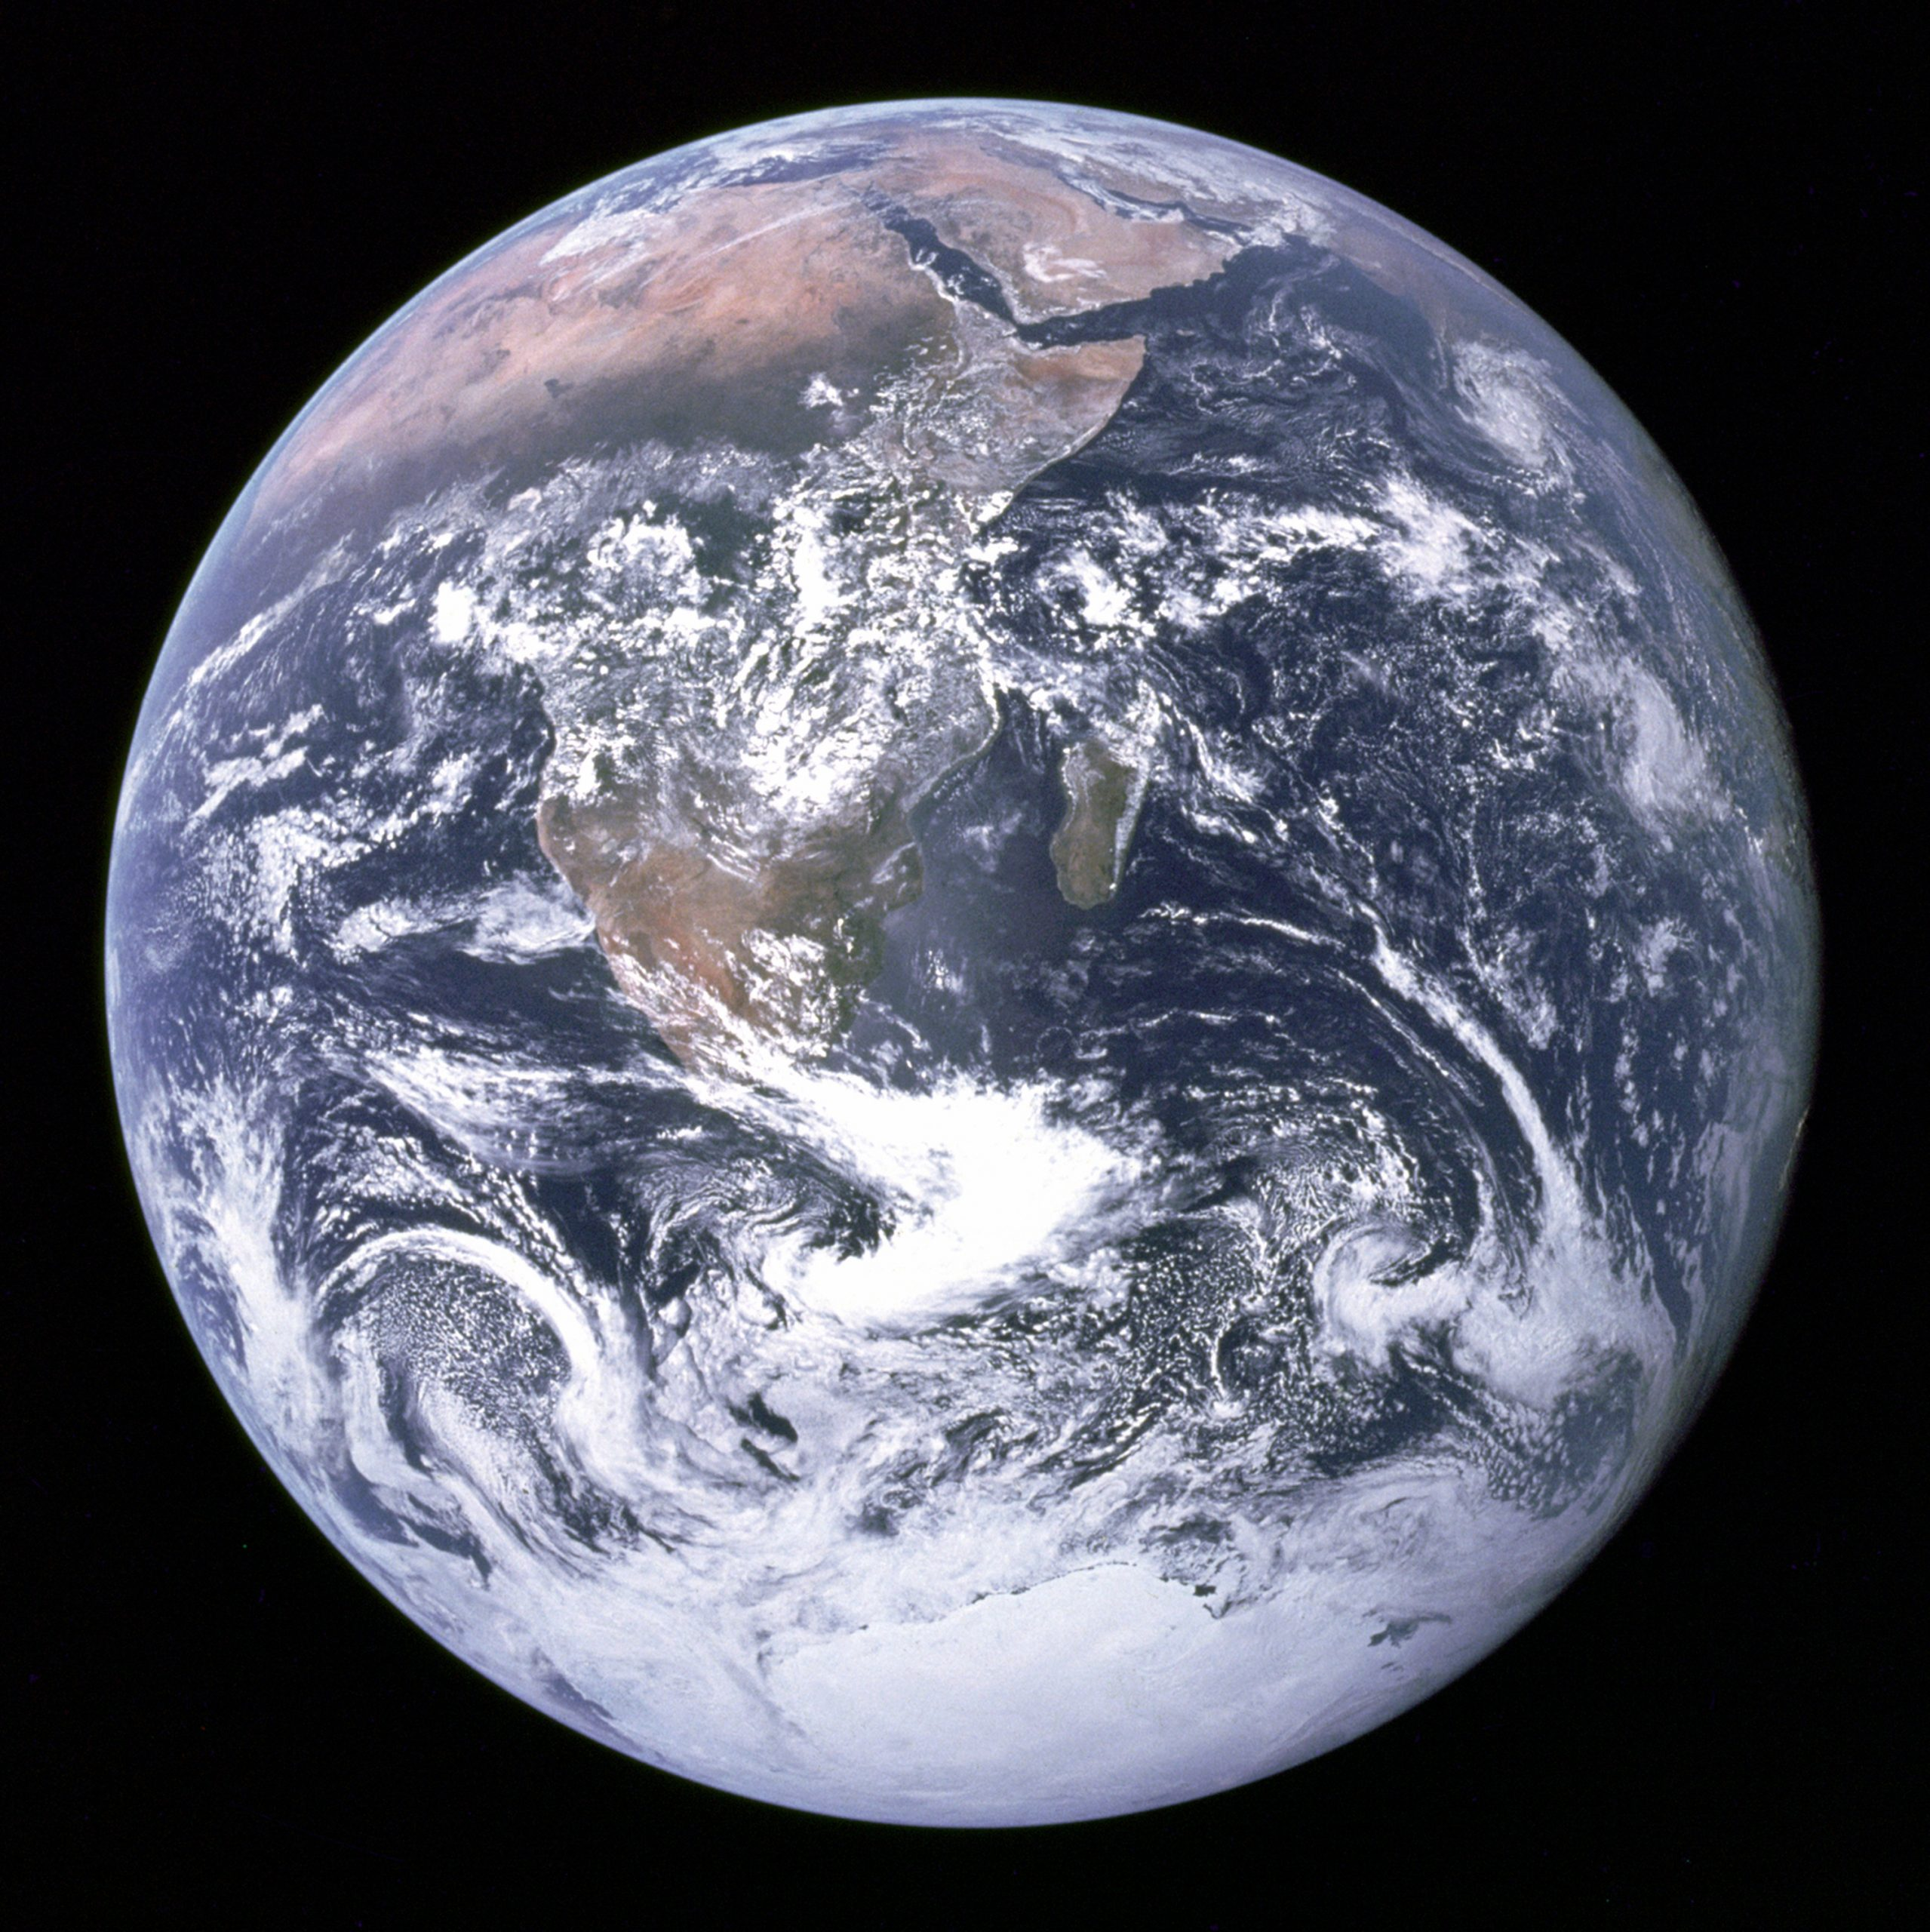 The Earth As Seen From Space. The Credit Info Is: The Earth Seen From Apollo 17, Apollo 17, Public Domain